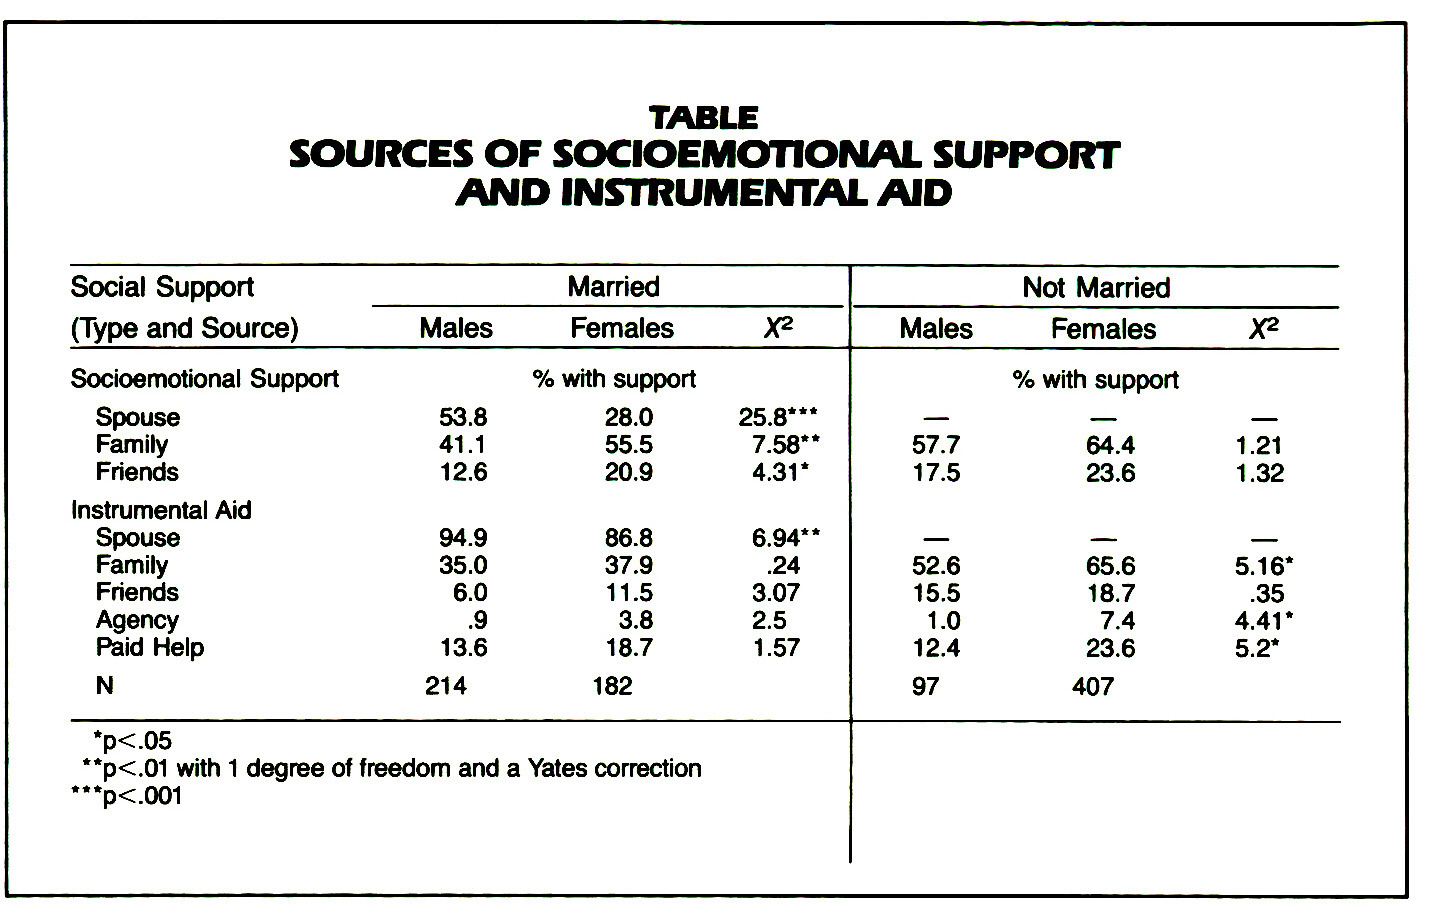 TABLESOURCES OF SOCIOEMOTIONAL SUPPORT AND INSTRUMENTAL AID